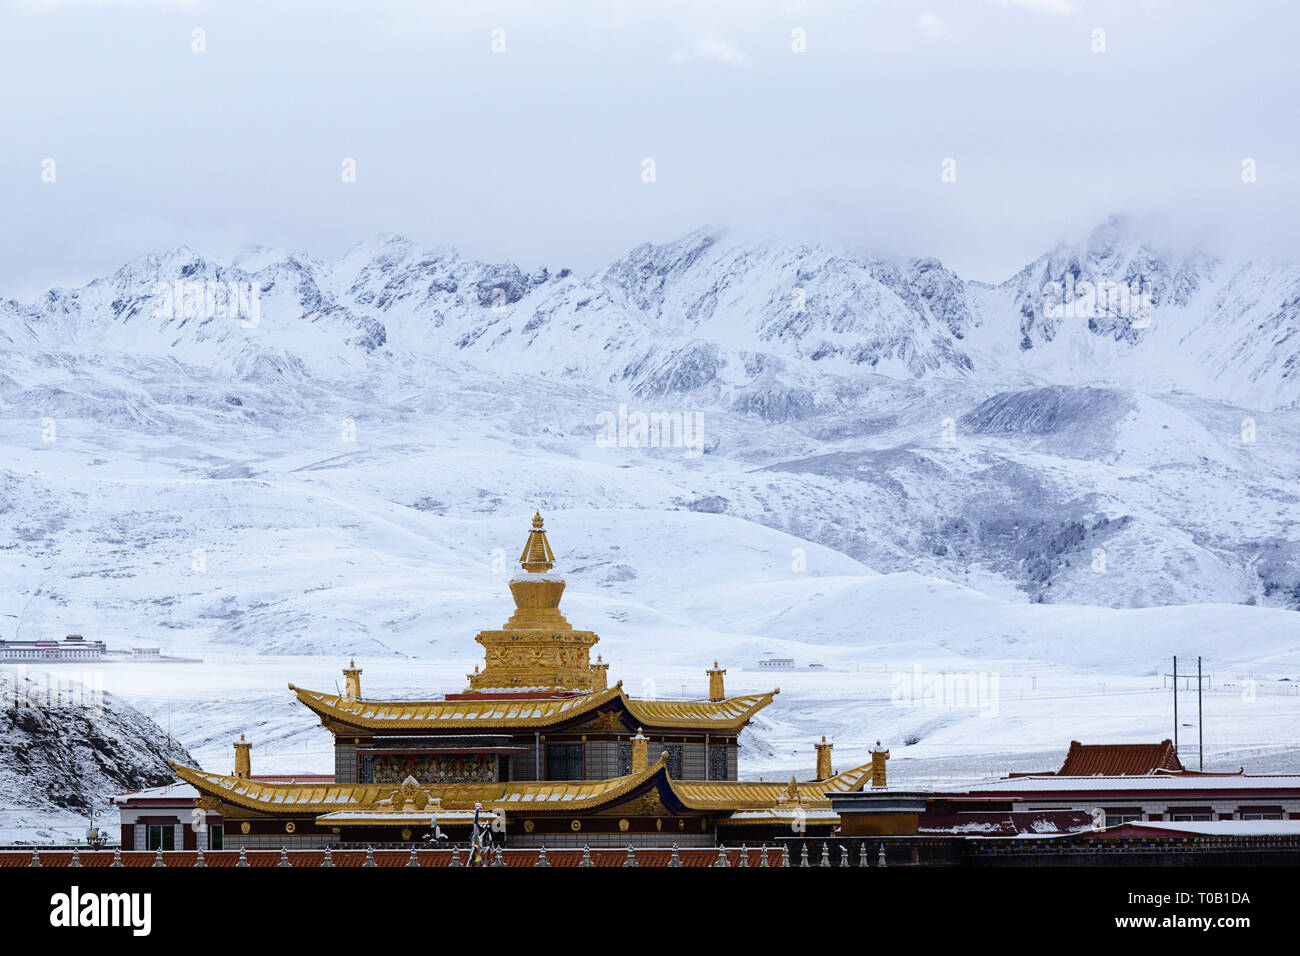 Tagong Temple on the Tagong Grassland in Ganzi Prefecture, Sichuan Province in snow covered landscape - Stock Image